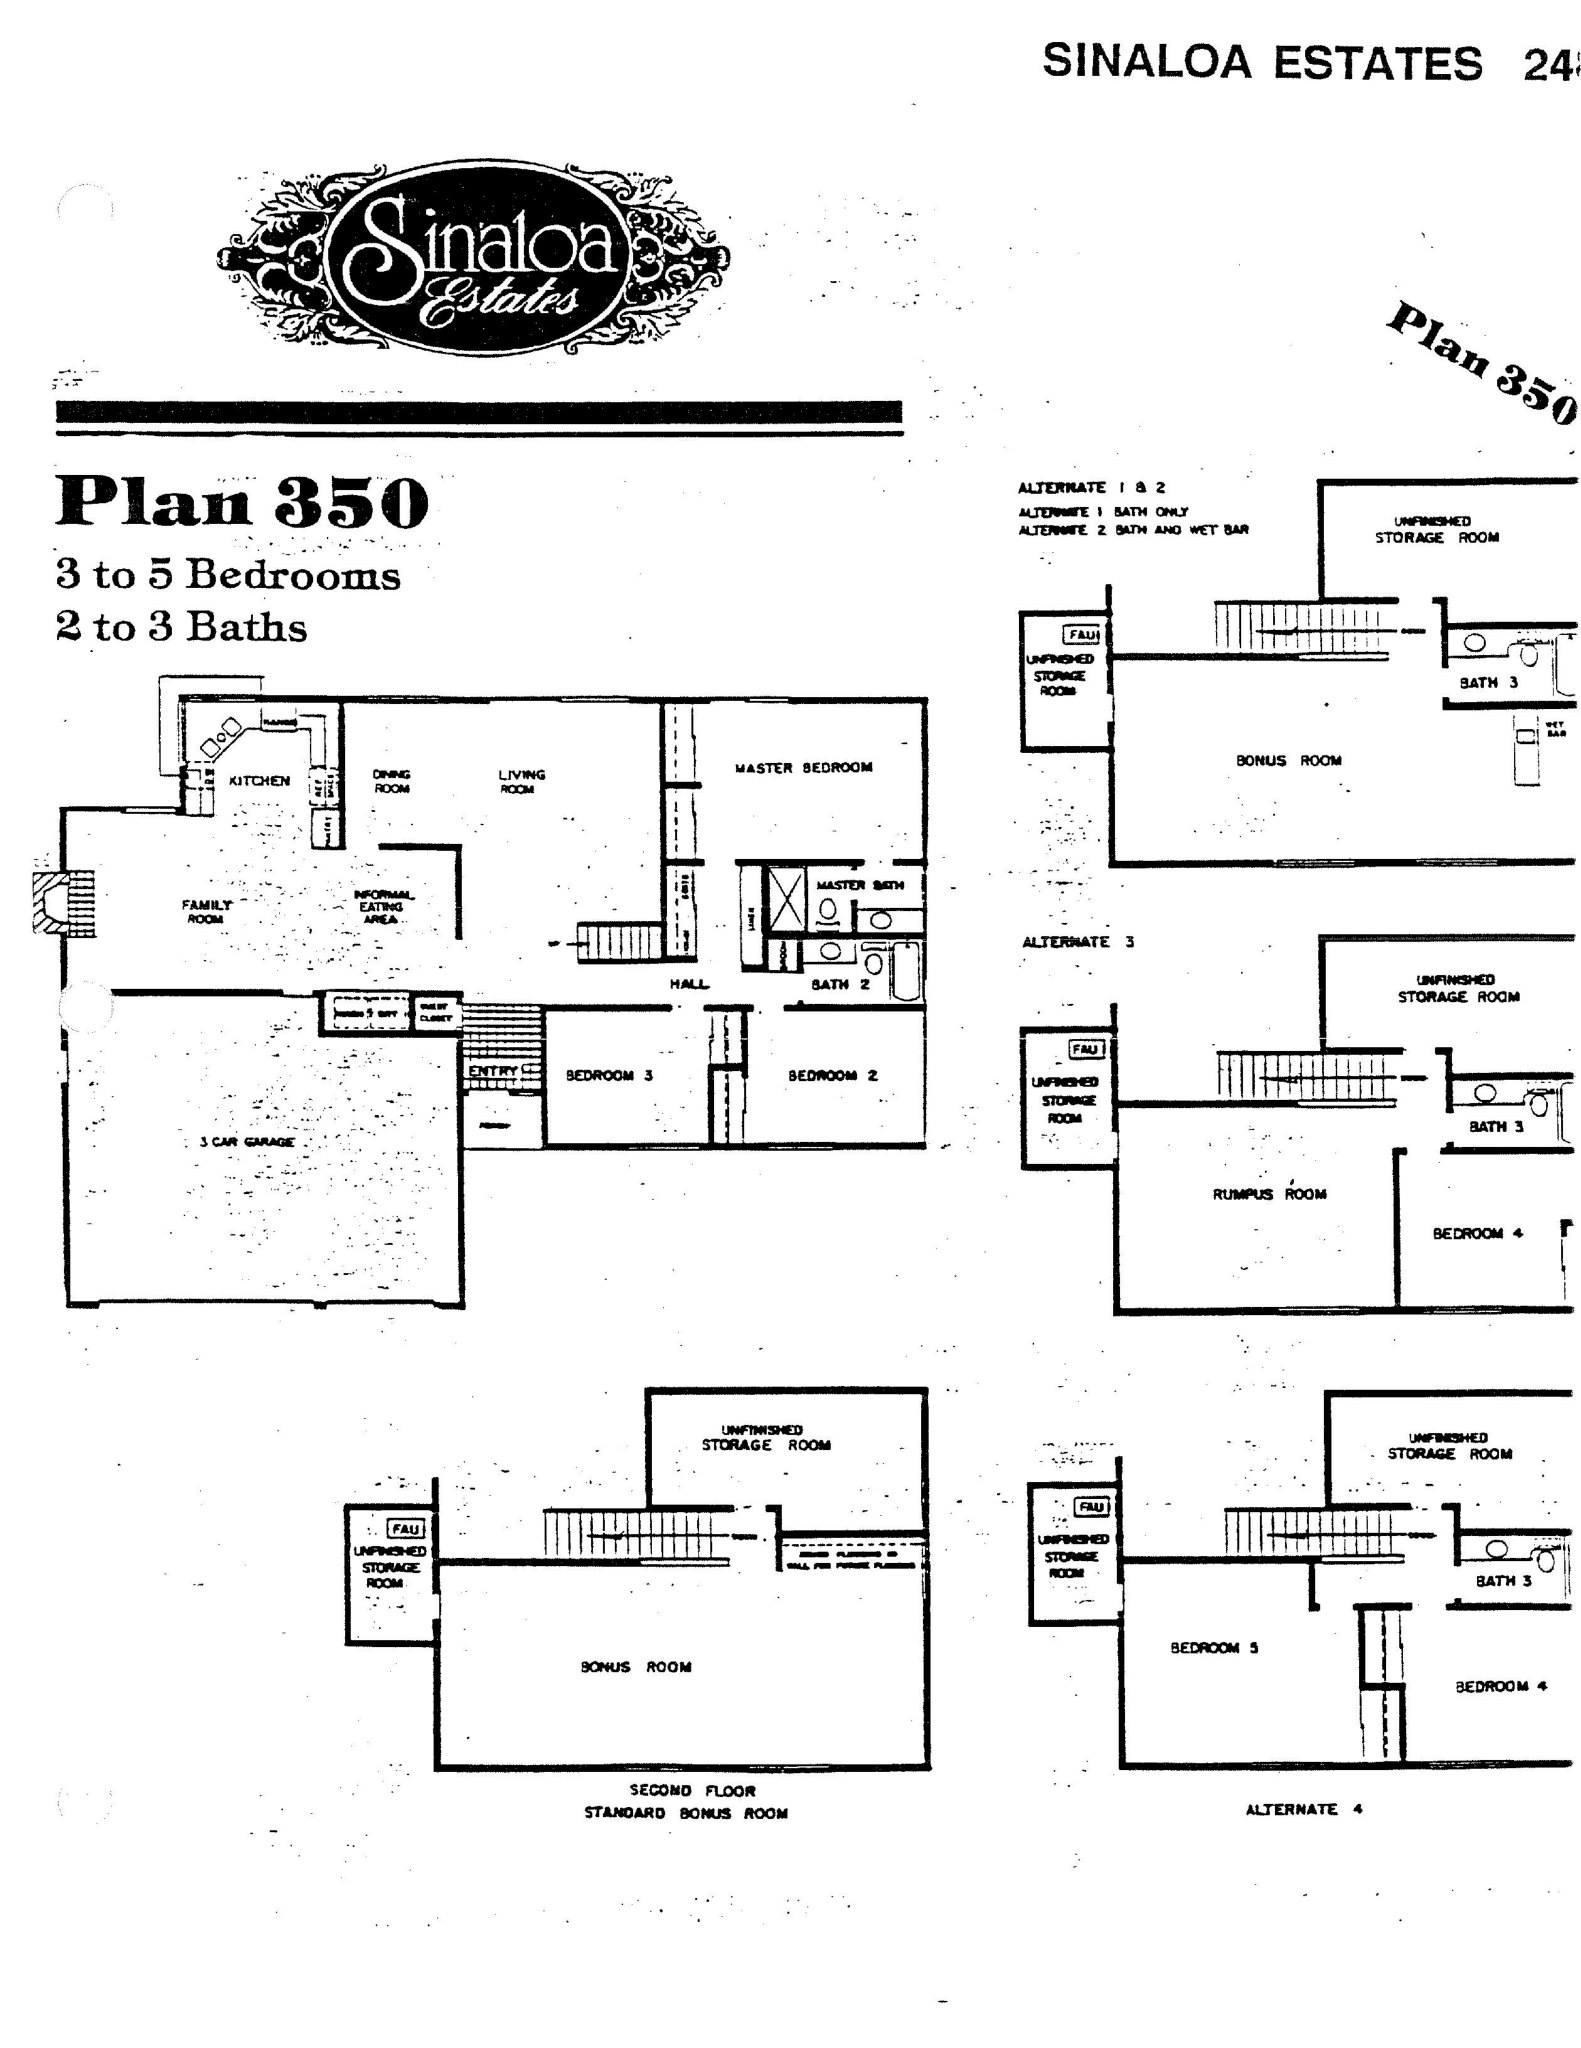 Sinaloa Estates - Plan 350